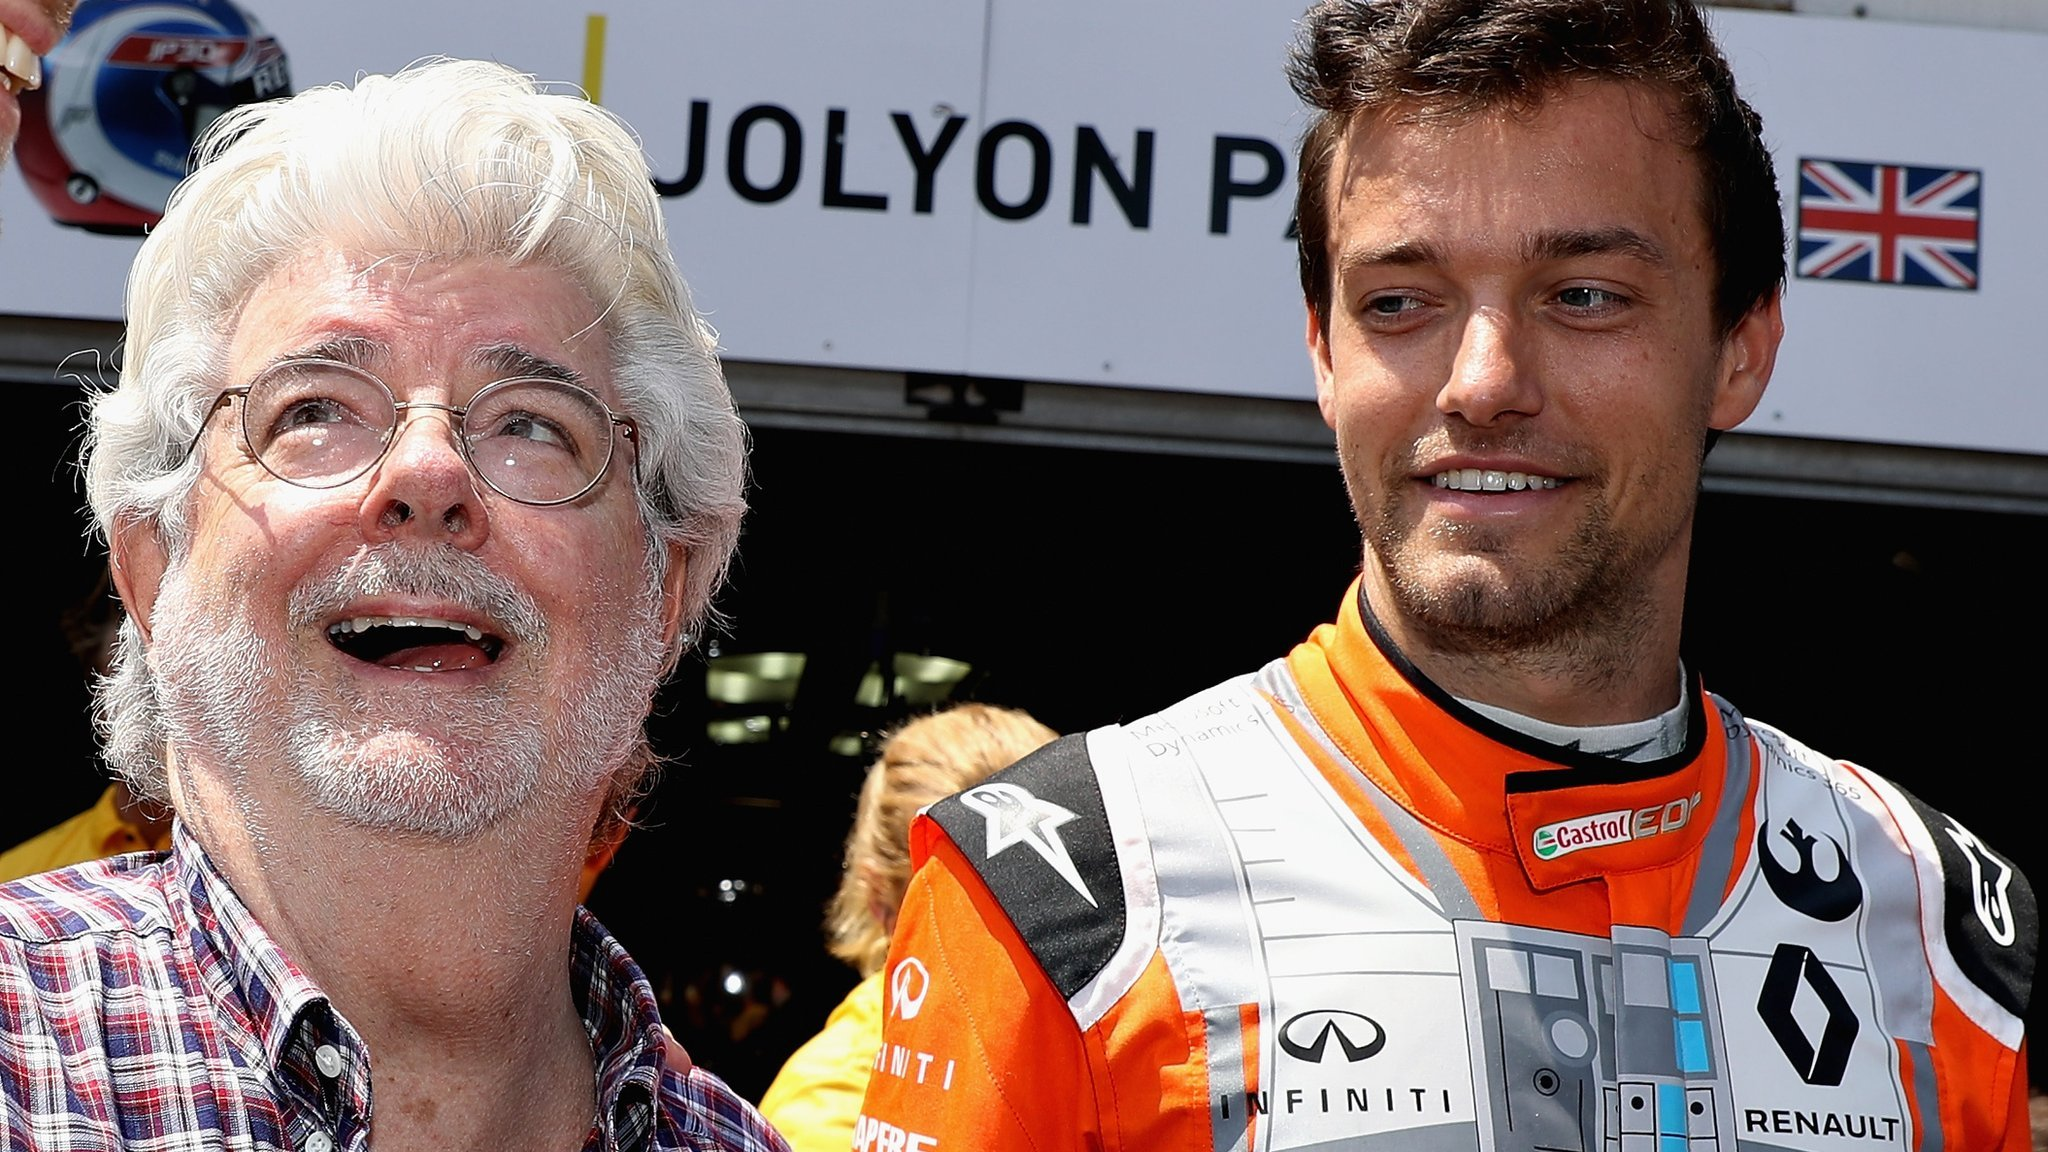 Monaco GP: Jolyon Palmer column - Mad, draining, fun, intense